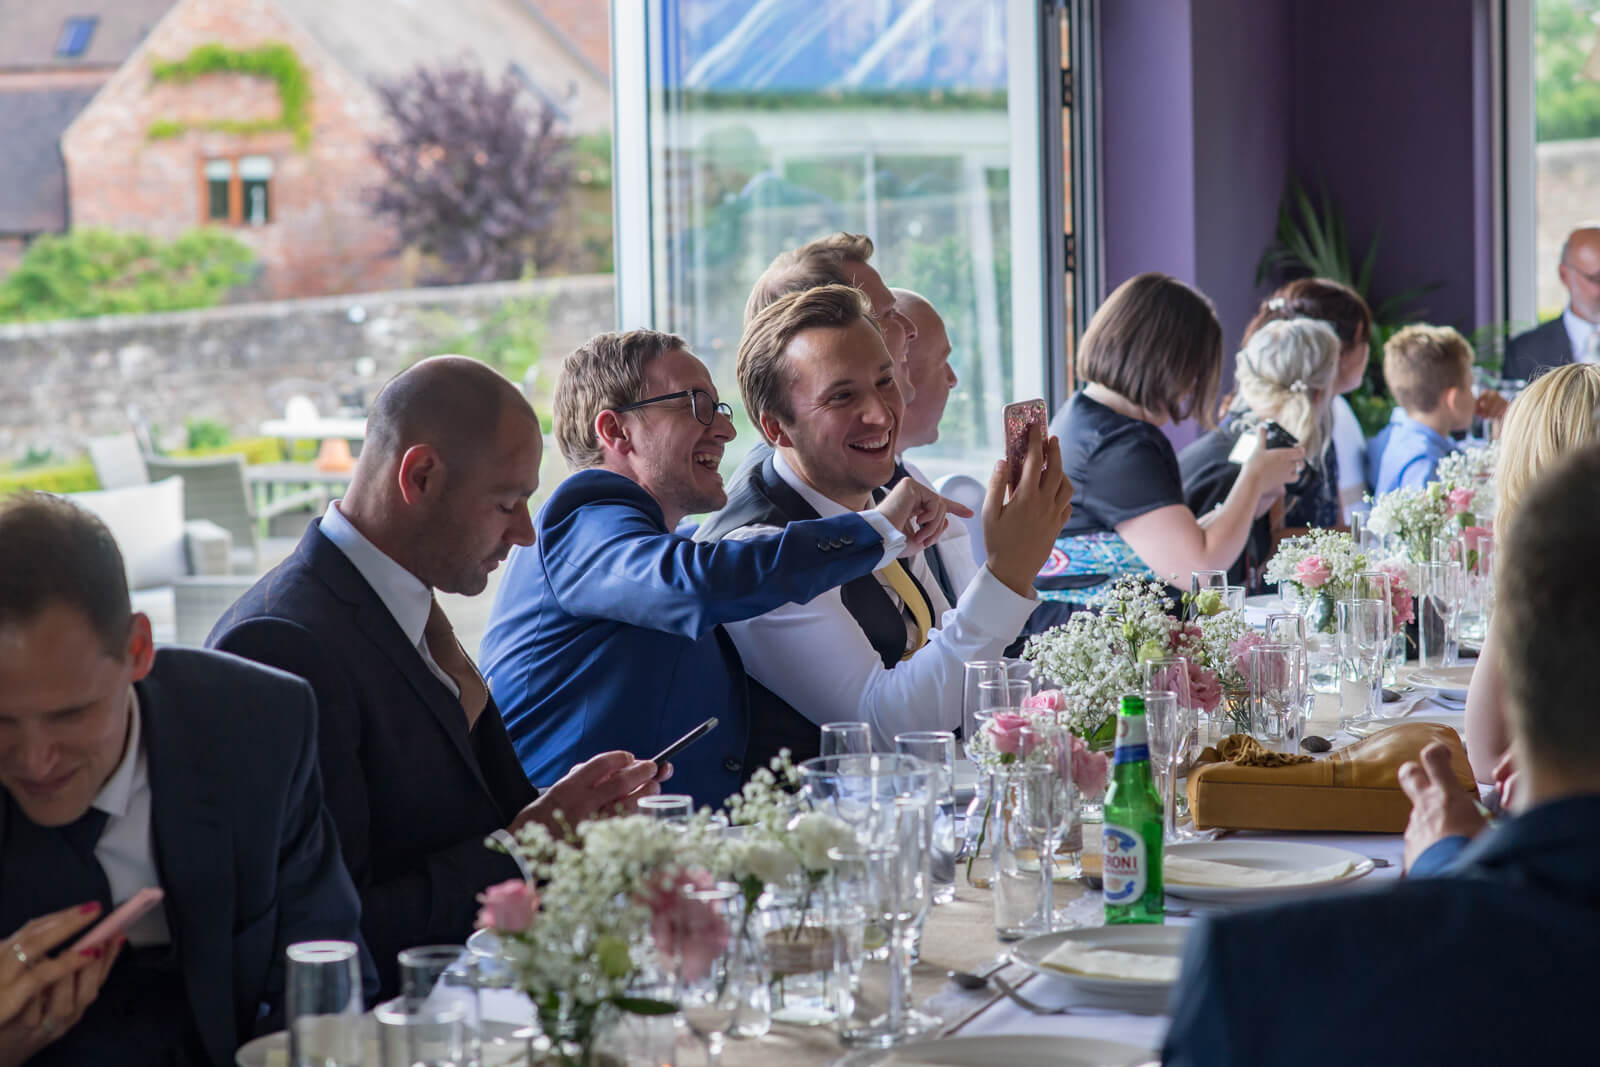 Guests at the wedding breakfast lauging at a mobile phone